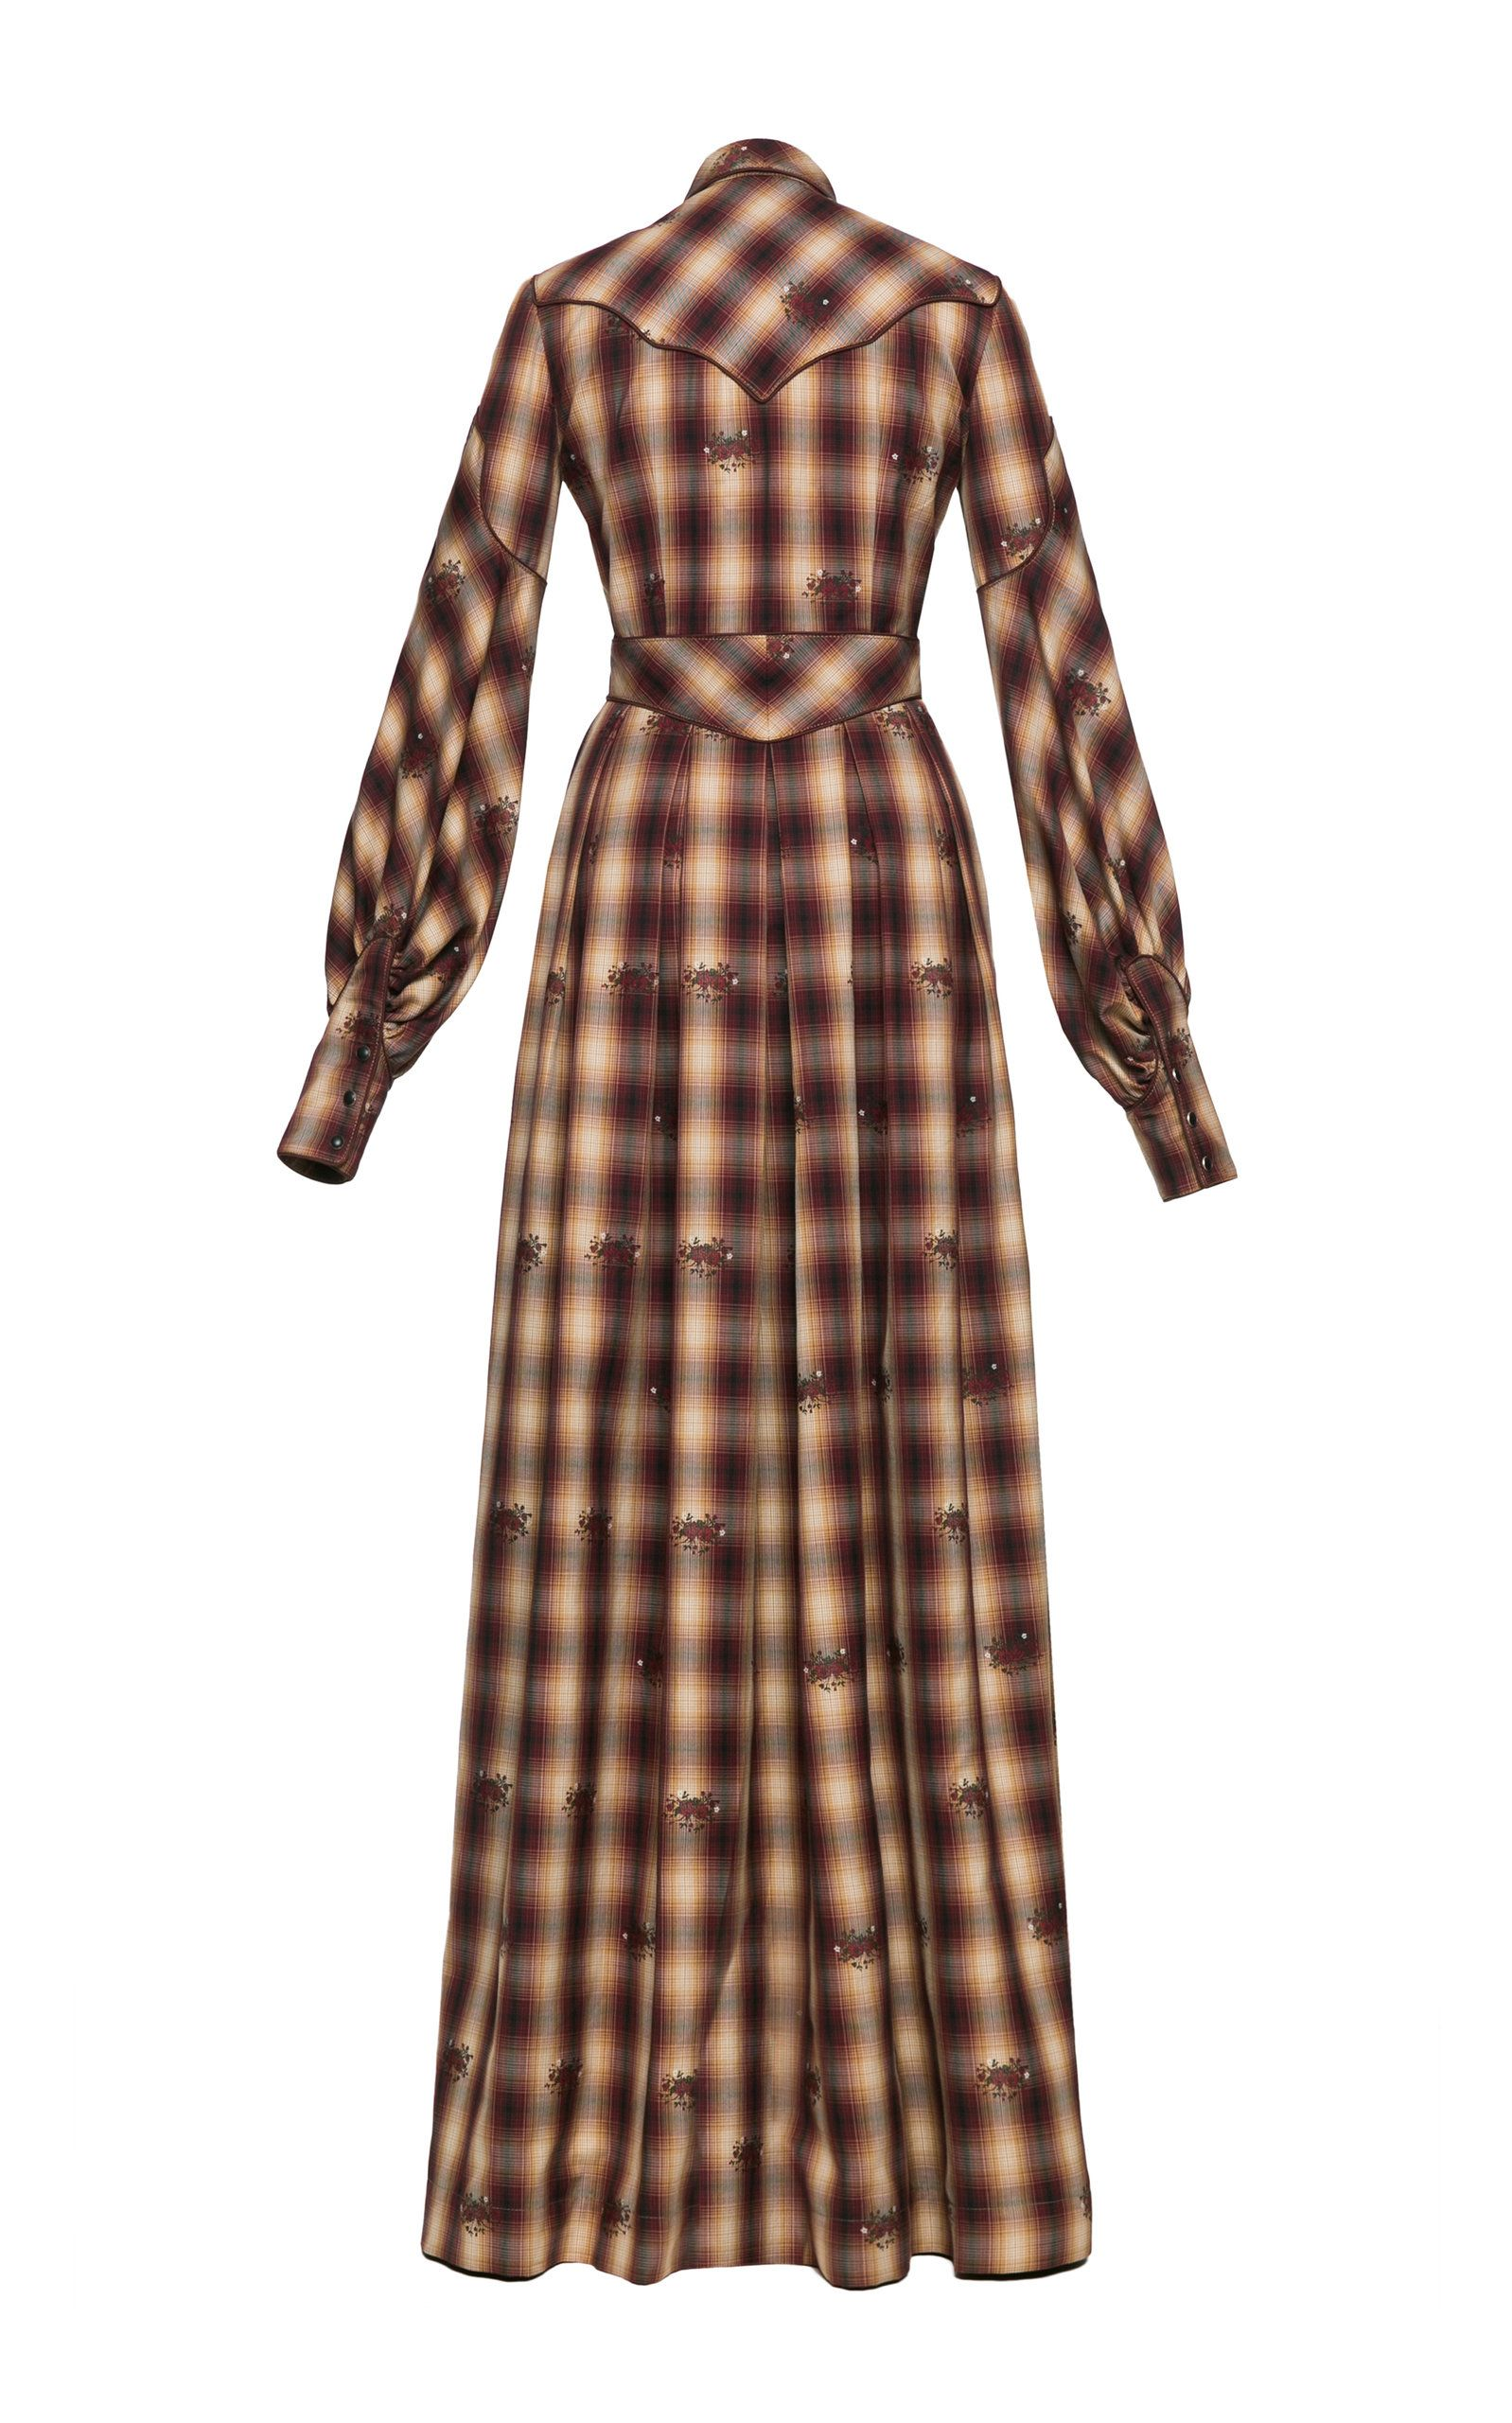 Lena Hoschek Dallas Western Checked Cotton Maxi Dress | Maxi